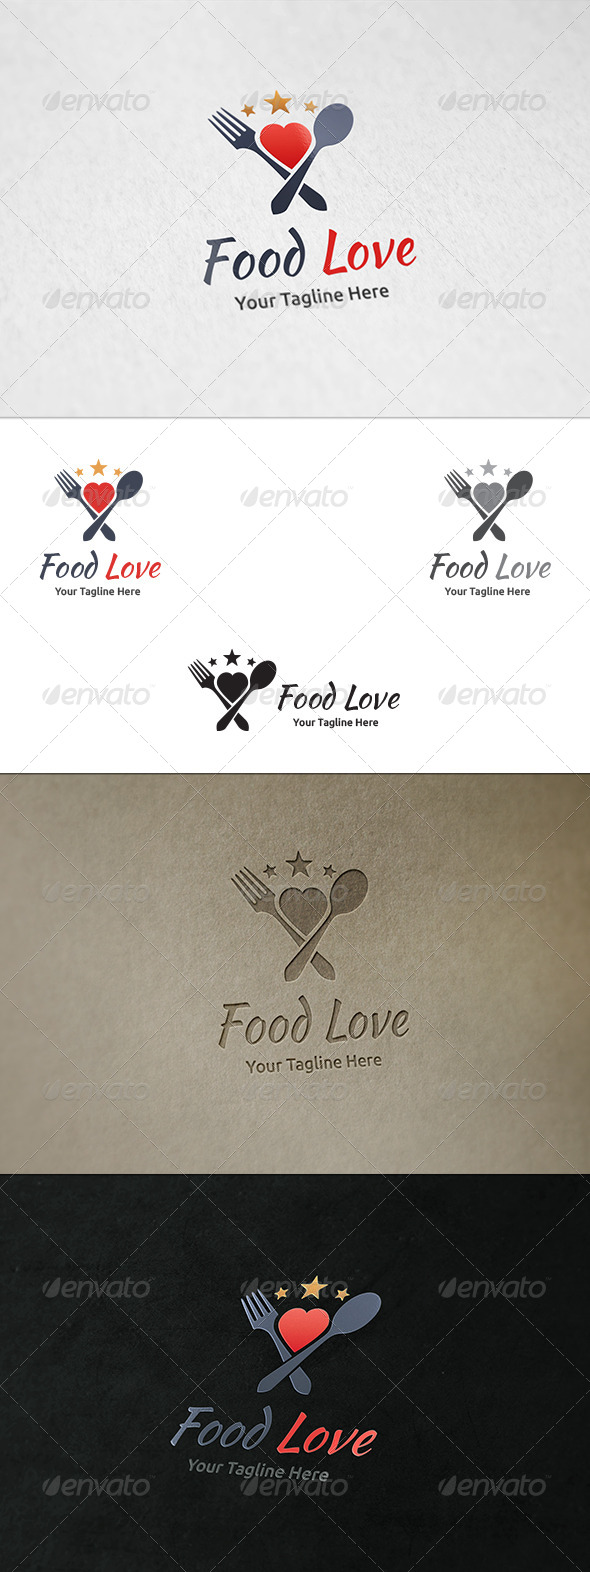 Food Love - Logo Template